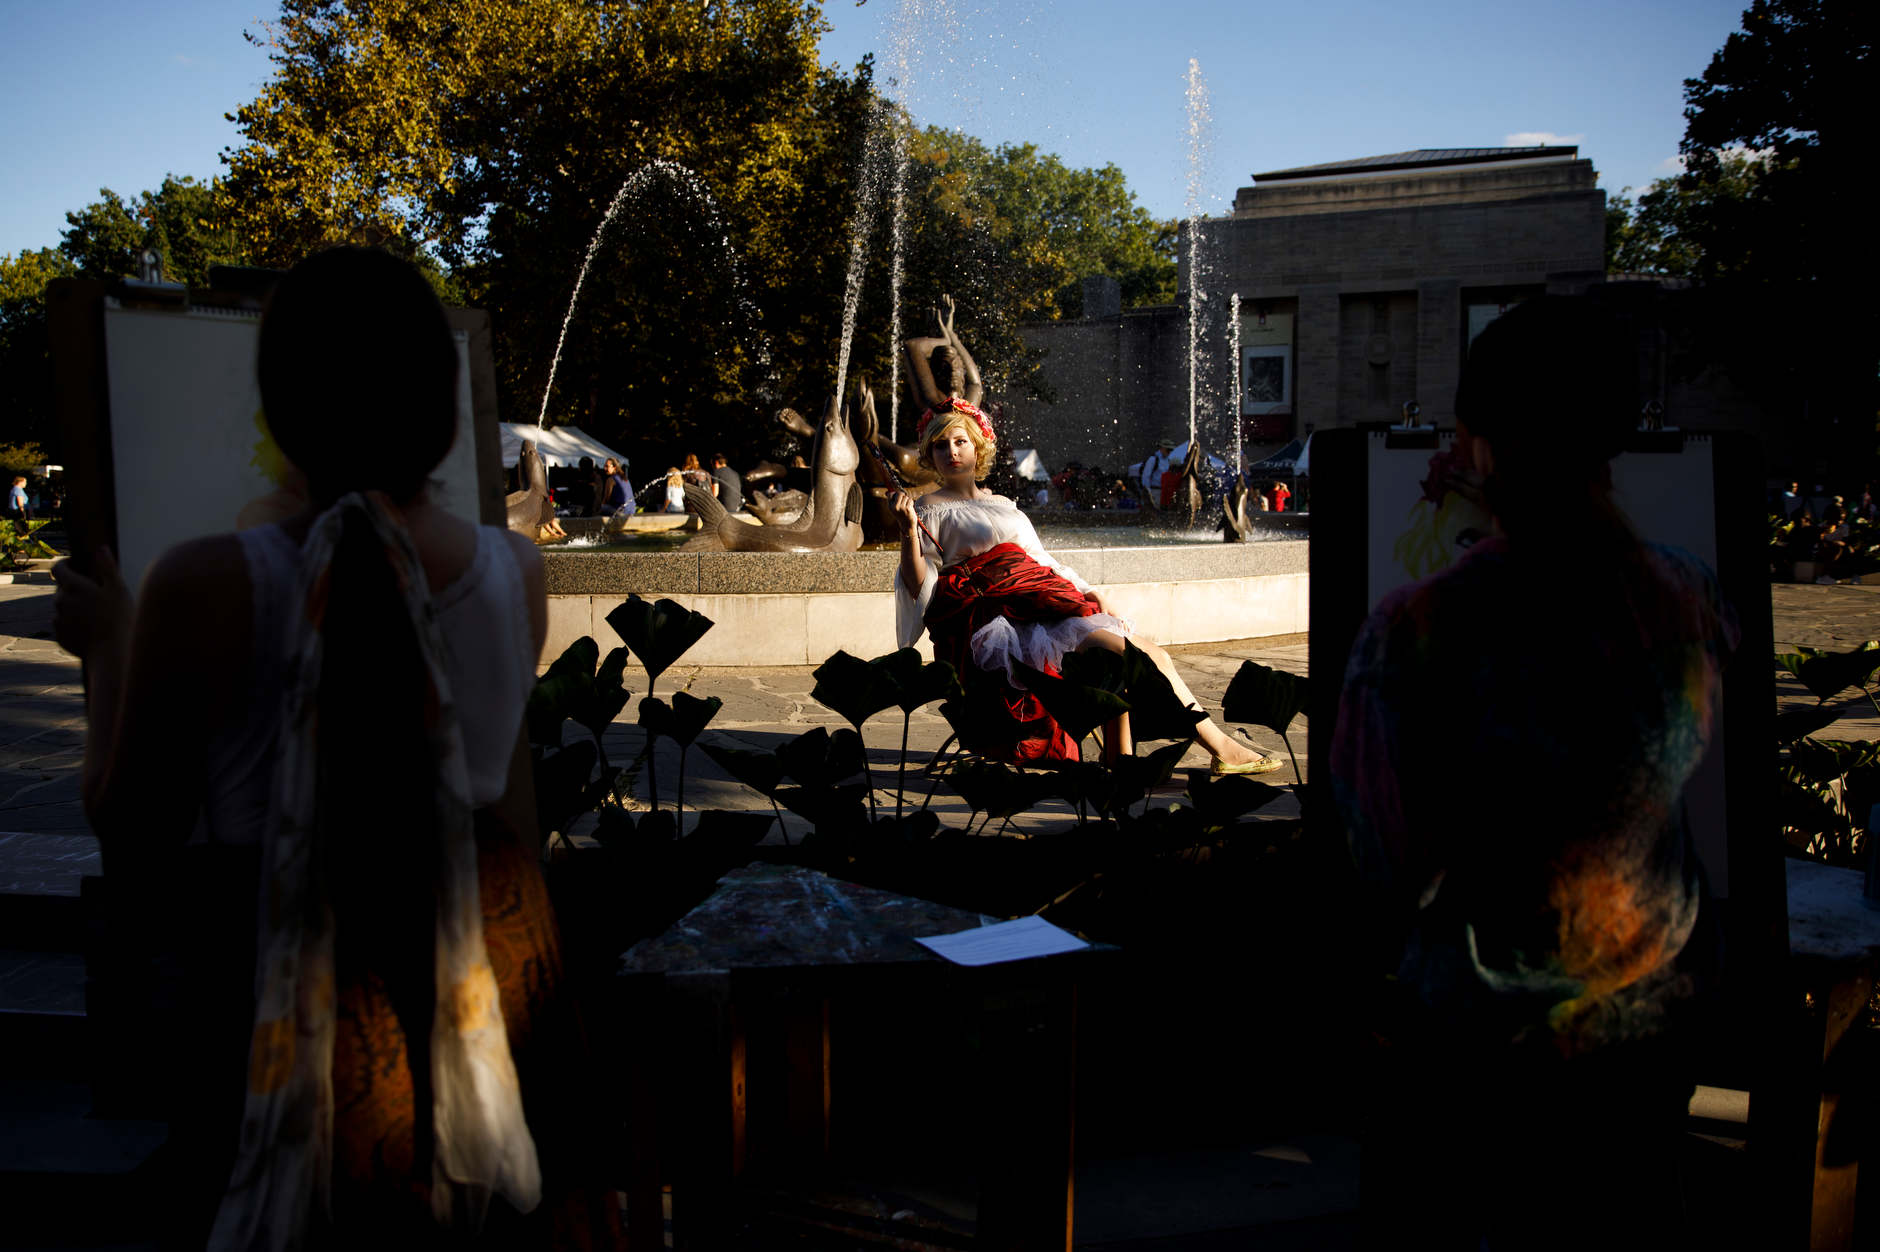 A model poses for artists near Showalter Fountain during the First Thursdays Festival on the Arts Plaza at IU Bloomington on Thursday, Sept. 5, 2019. (James Brosher/Indiana University)